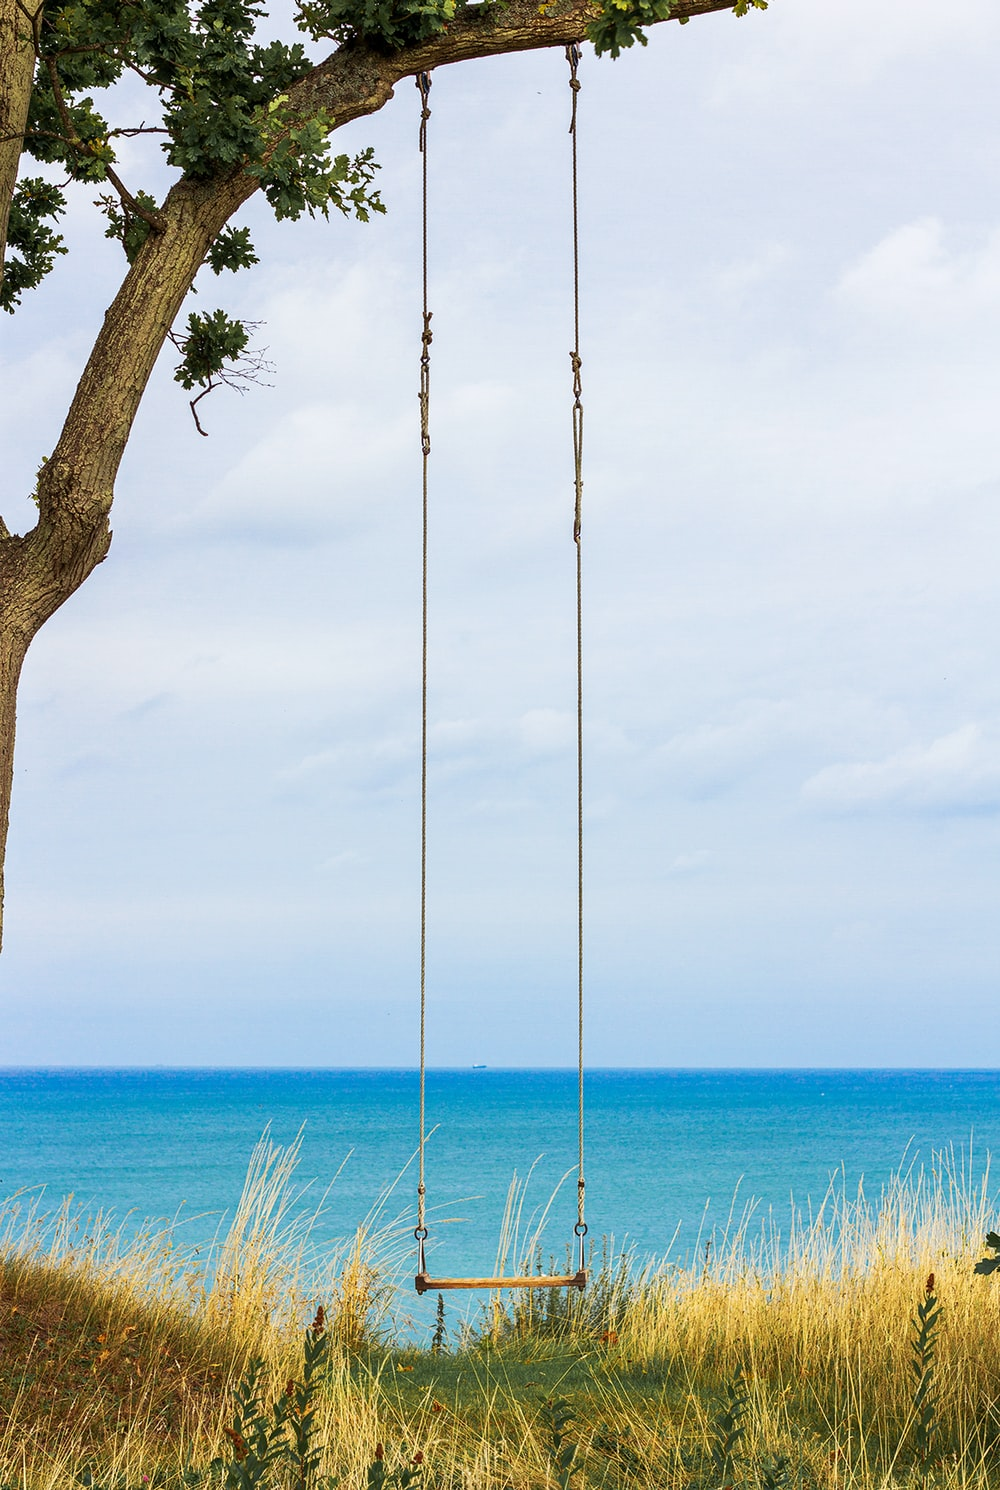 brown wooden swing on tree trunk near sea during daytime